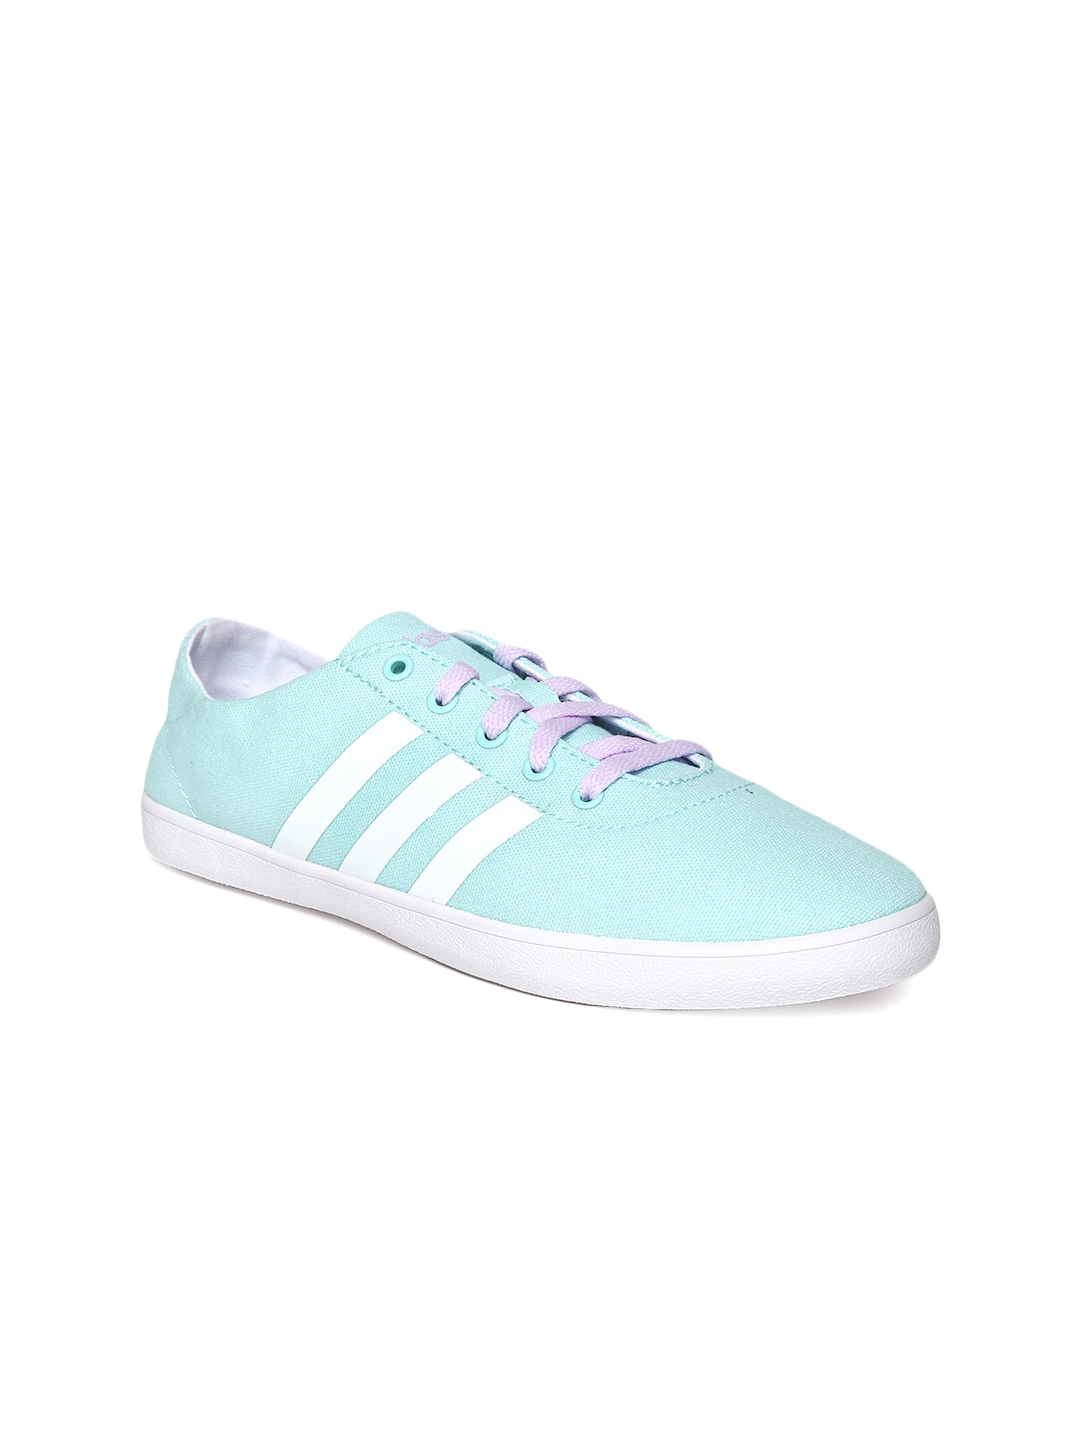 Adidas Shoes Women Casual